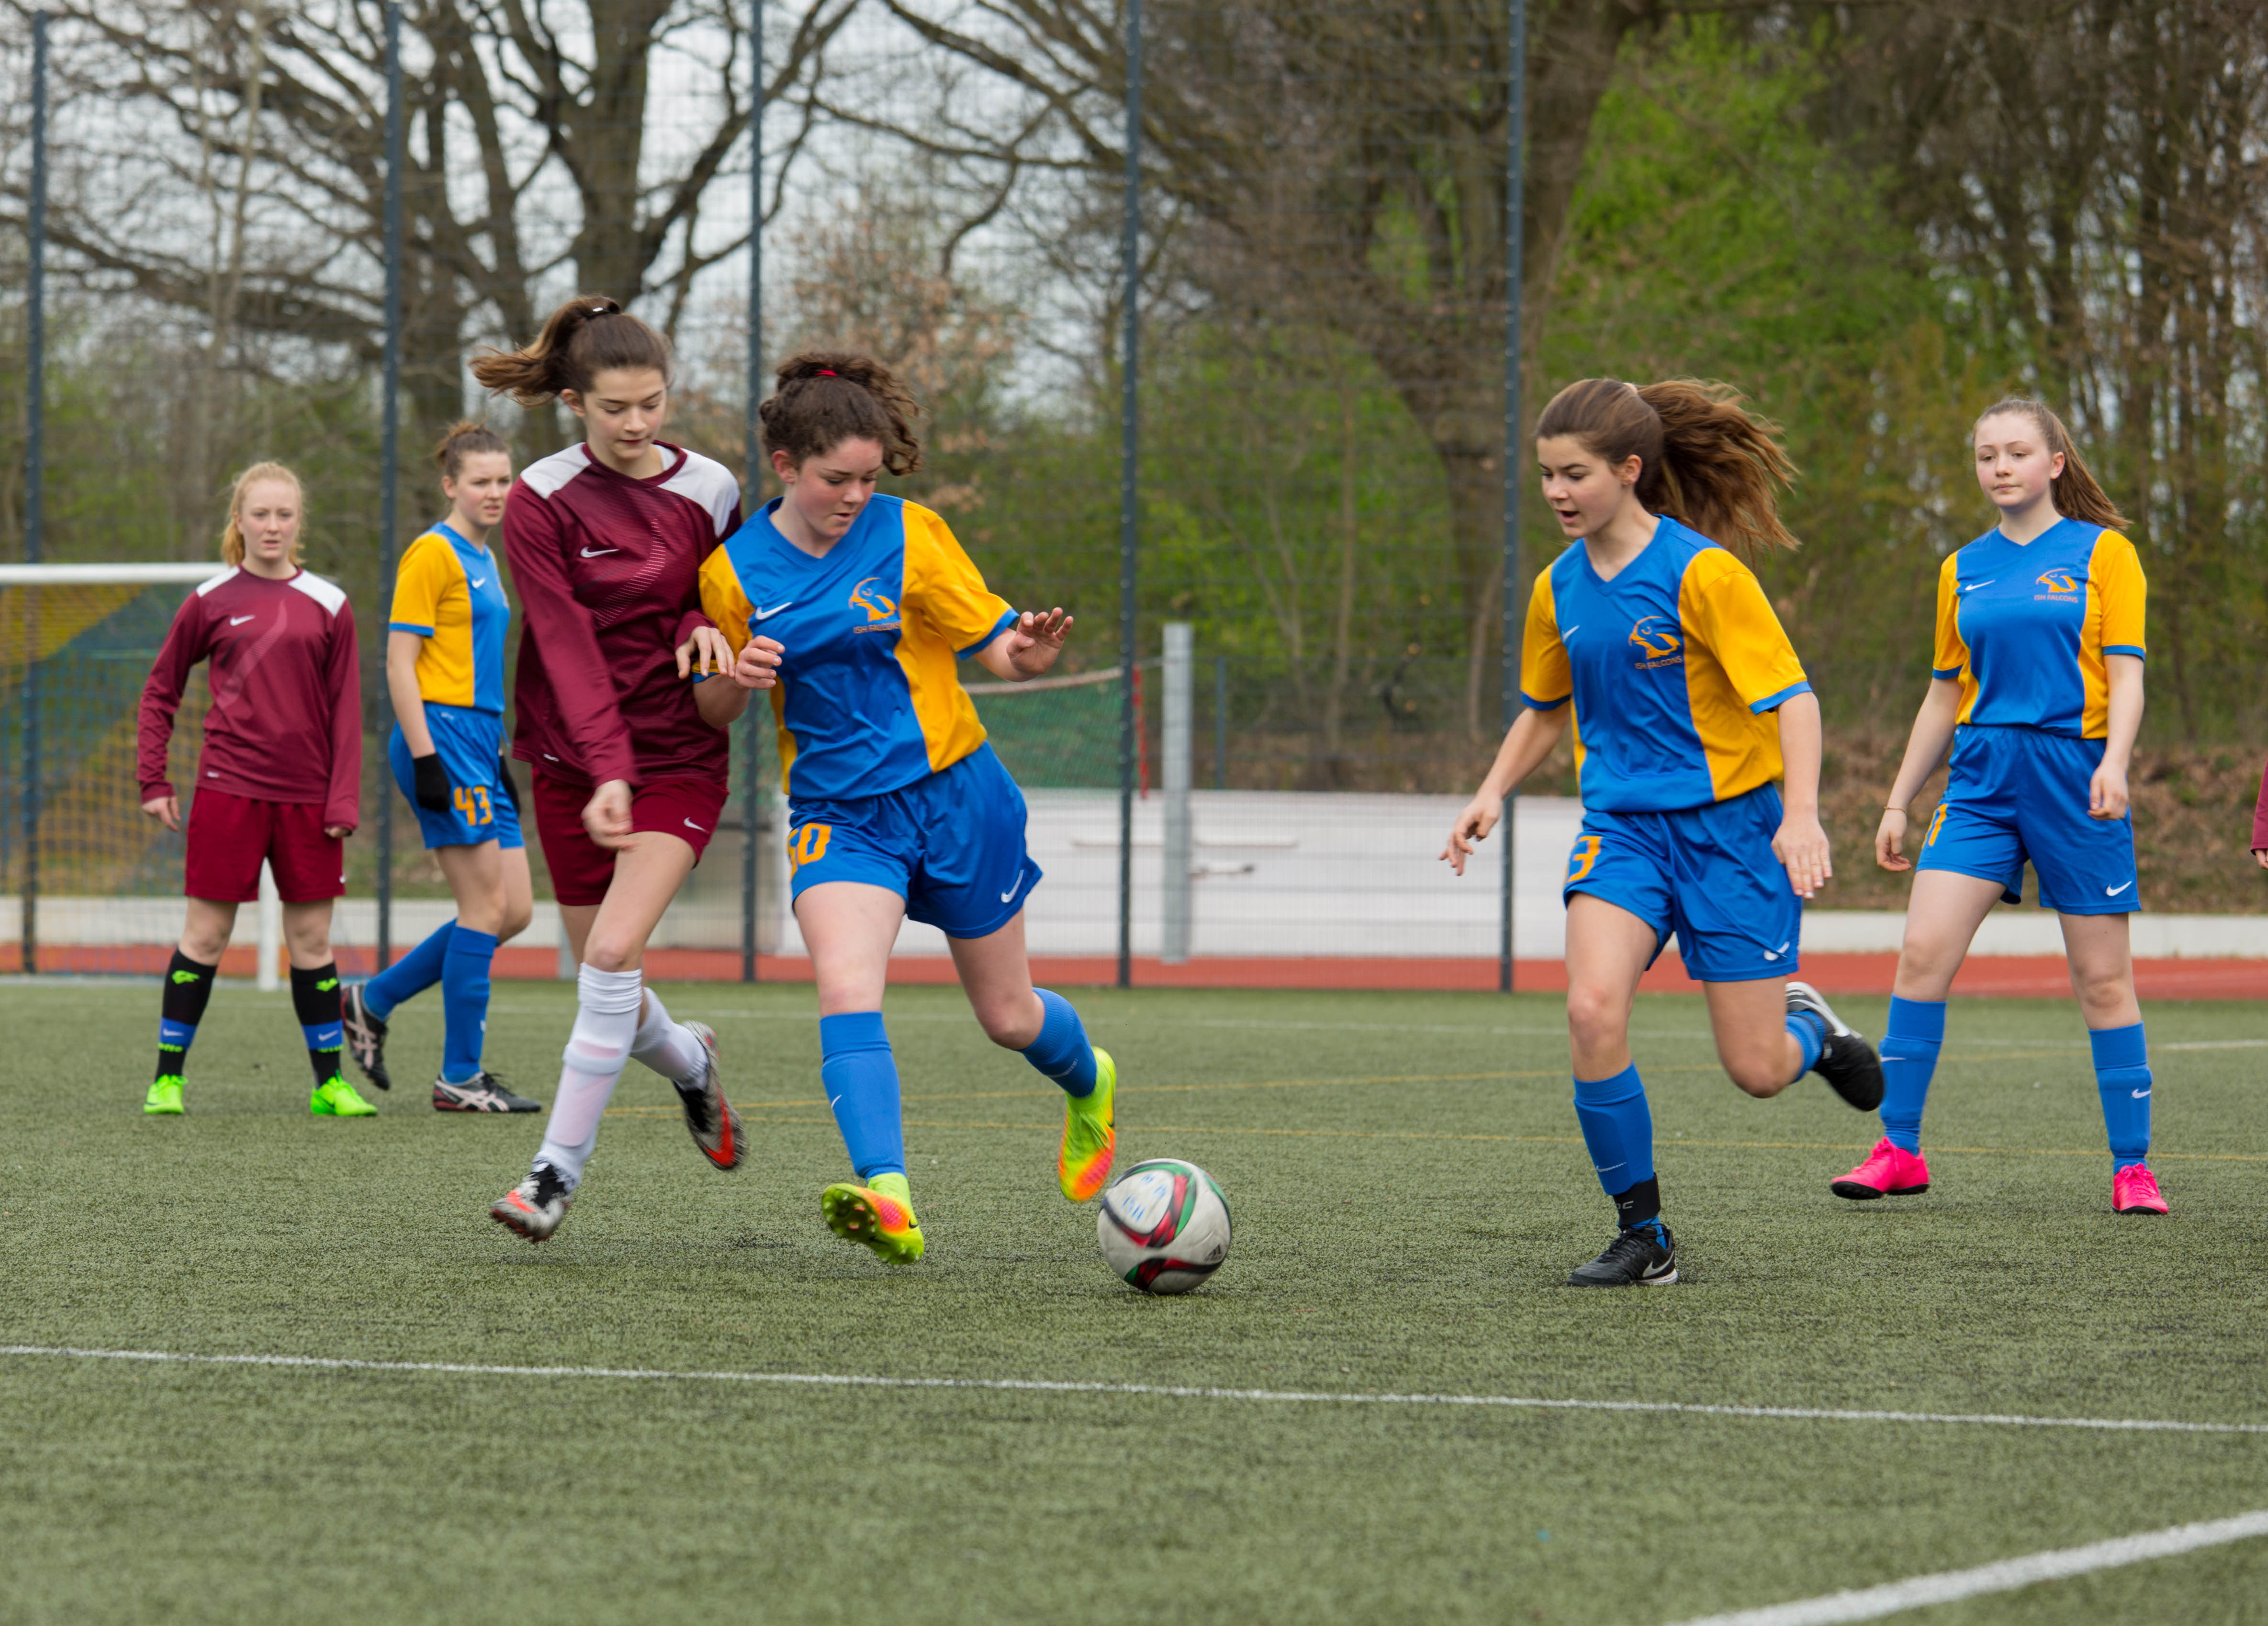 International School of Hamburg football students